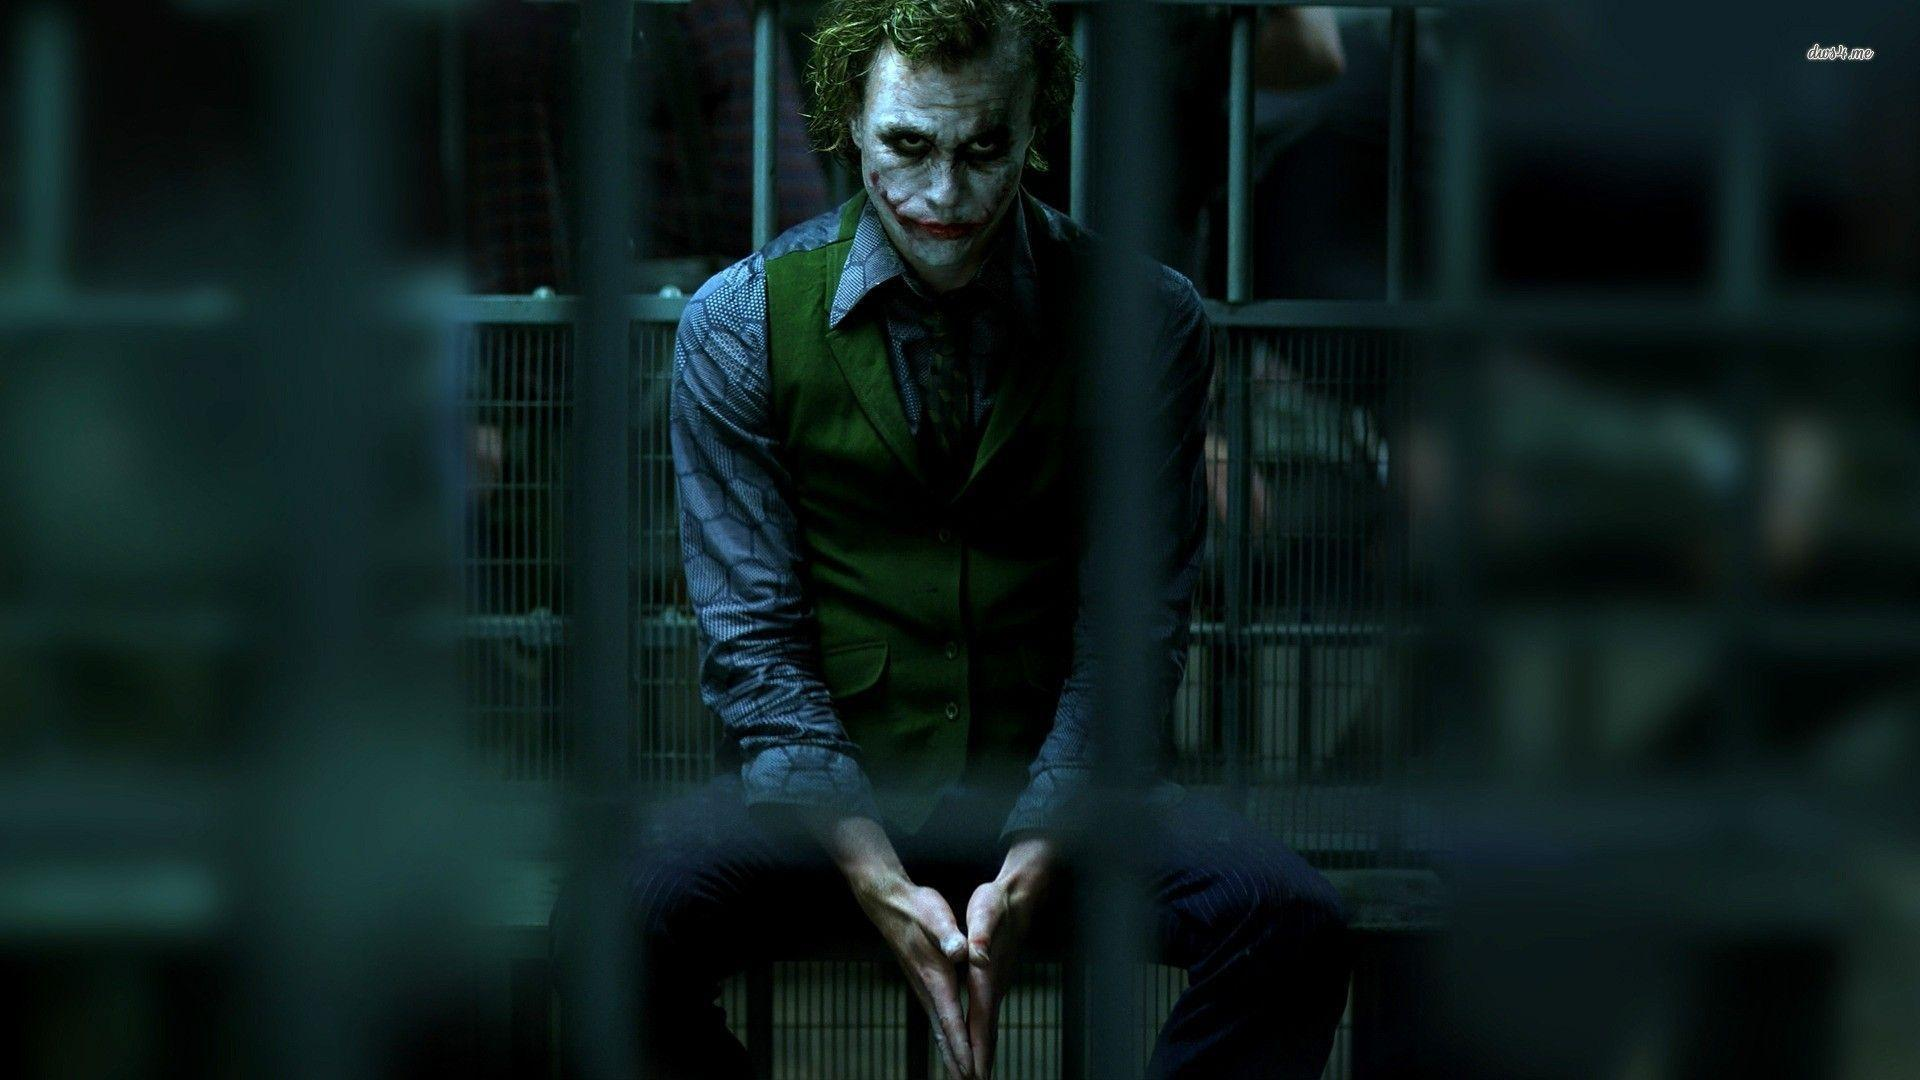 the dark knight joker wallpapers wallpaper cave. Black Bedroom Furniture Sets. Home Design Ideas